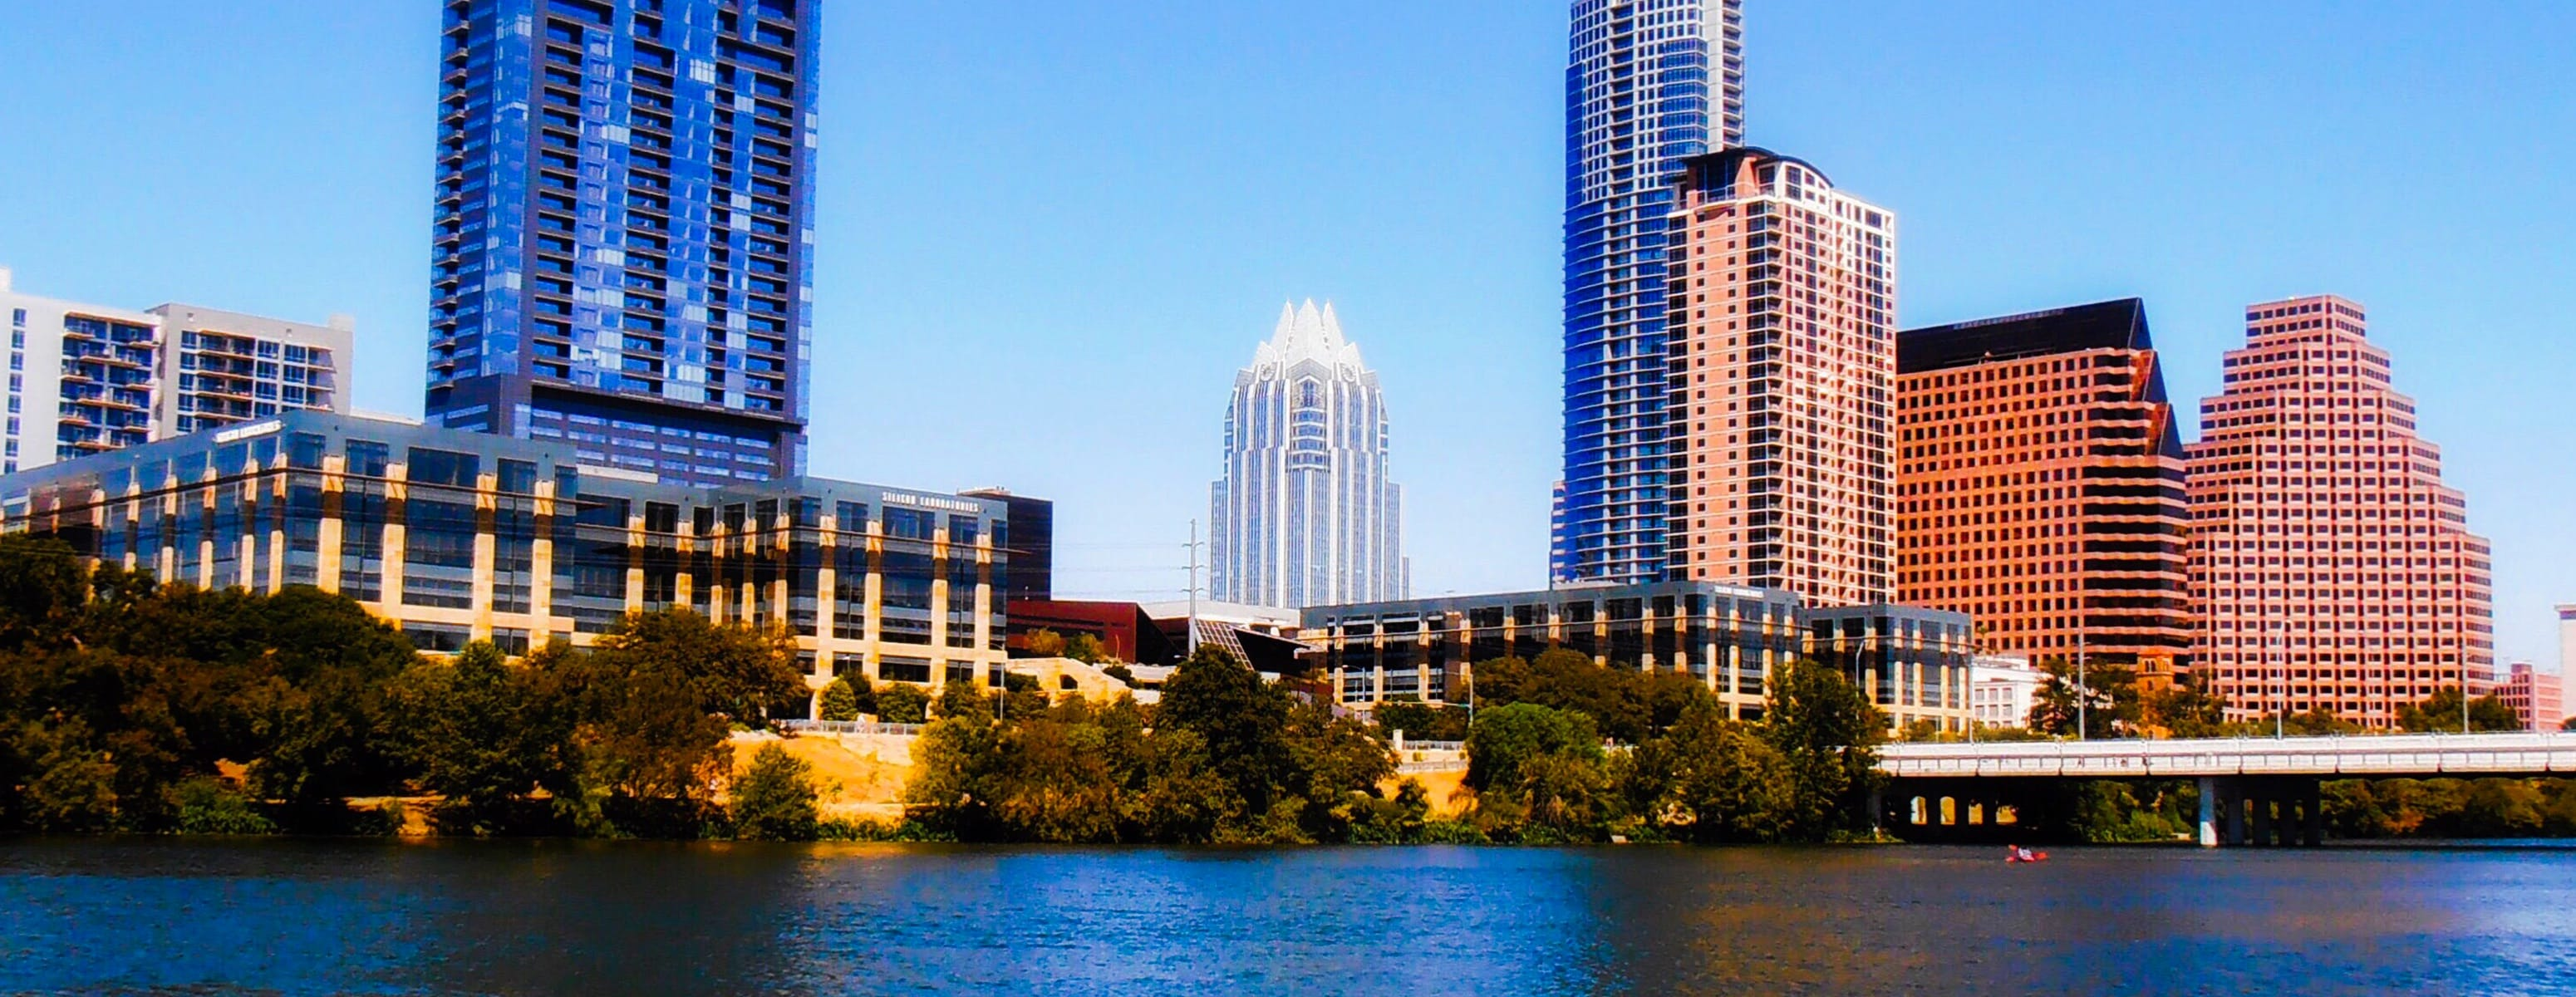 Austin 2018 (with Photos): Top 20 Places To Stay In Austin   Vacation  Rentals, Vacation Homes   Airbnb Austin, Texas, United States: Treehouse  Austin ...